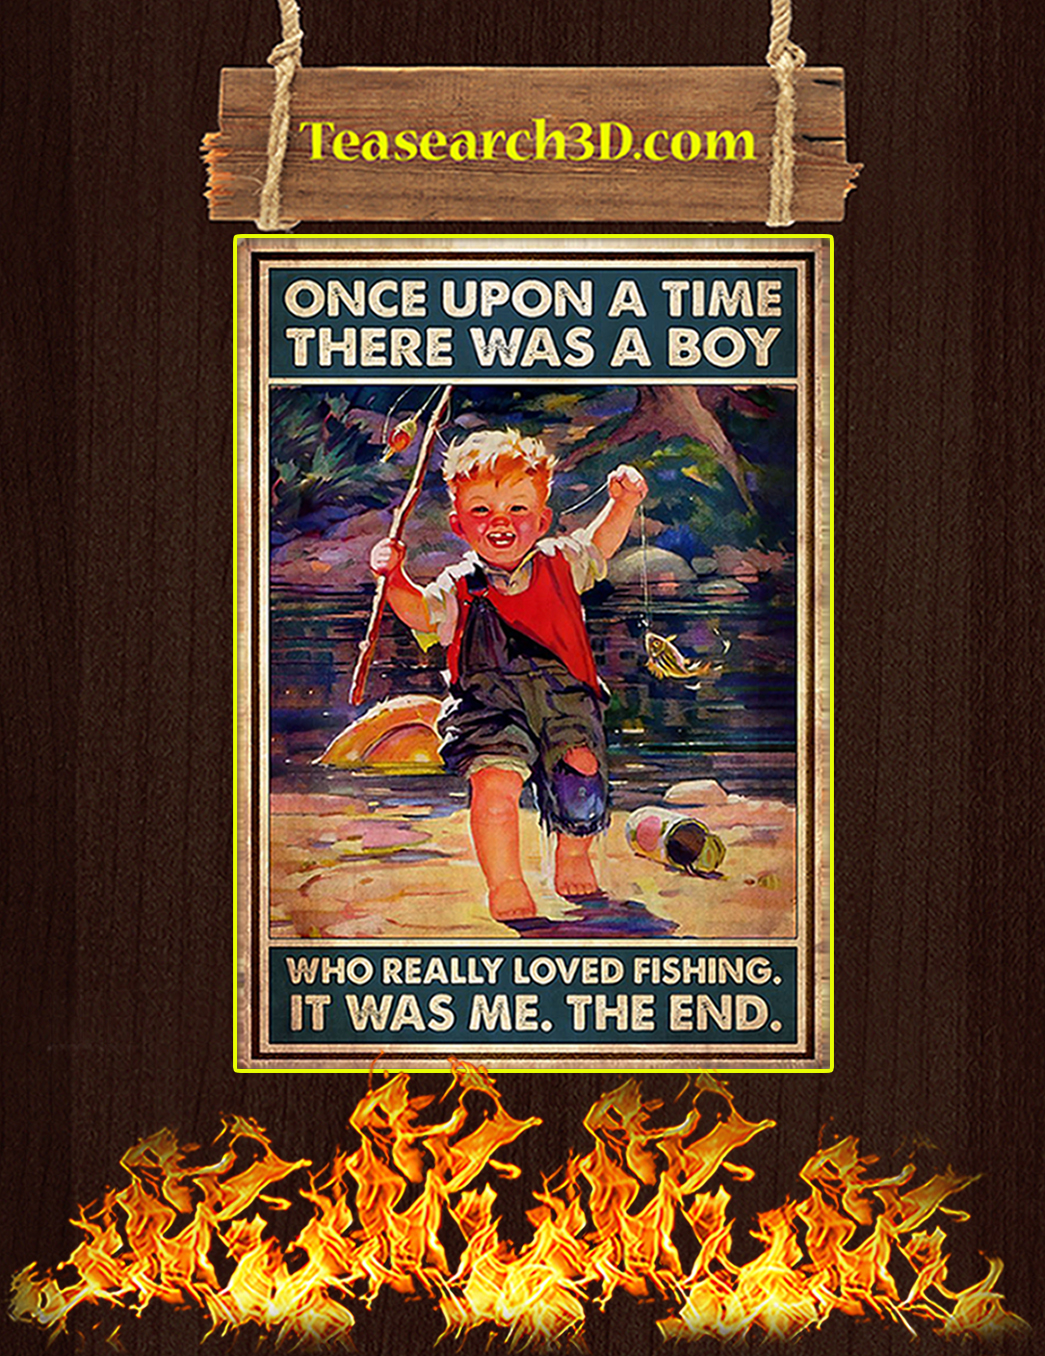 Once upon a time there was a boy who really loved fishing poster A1